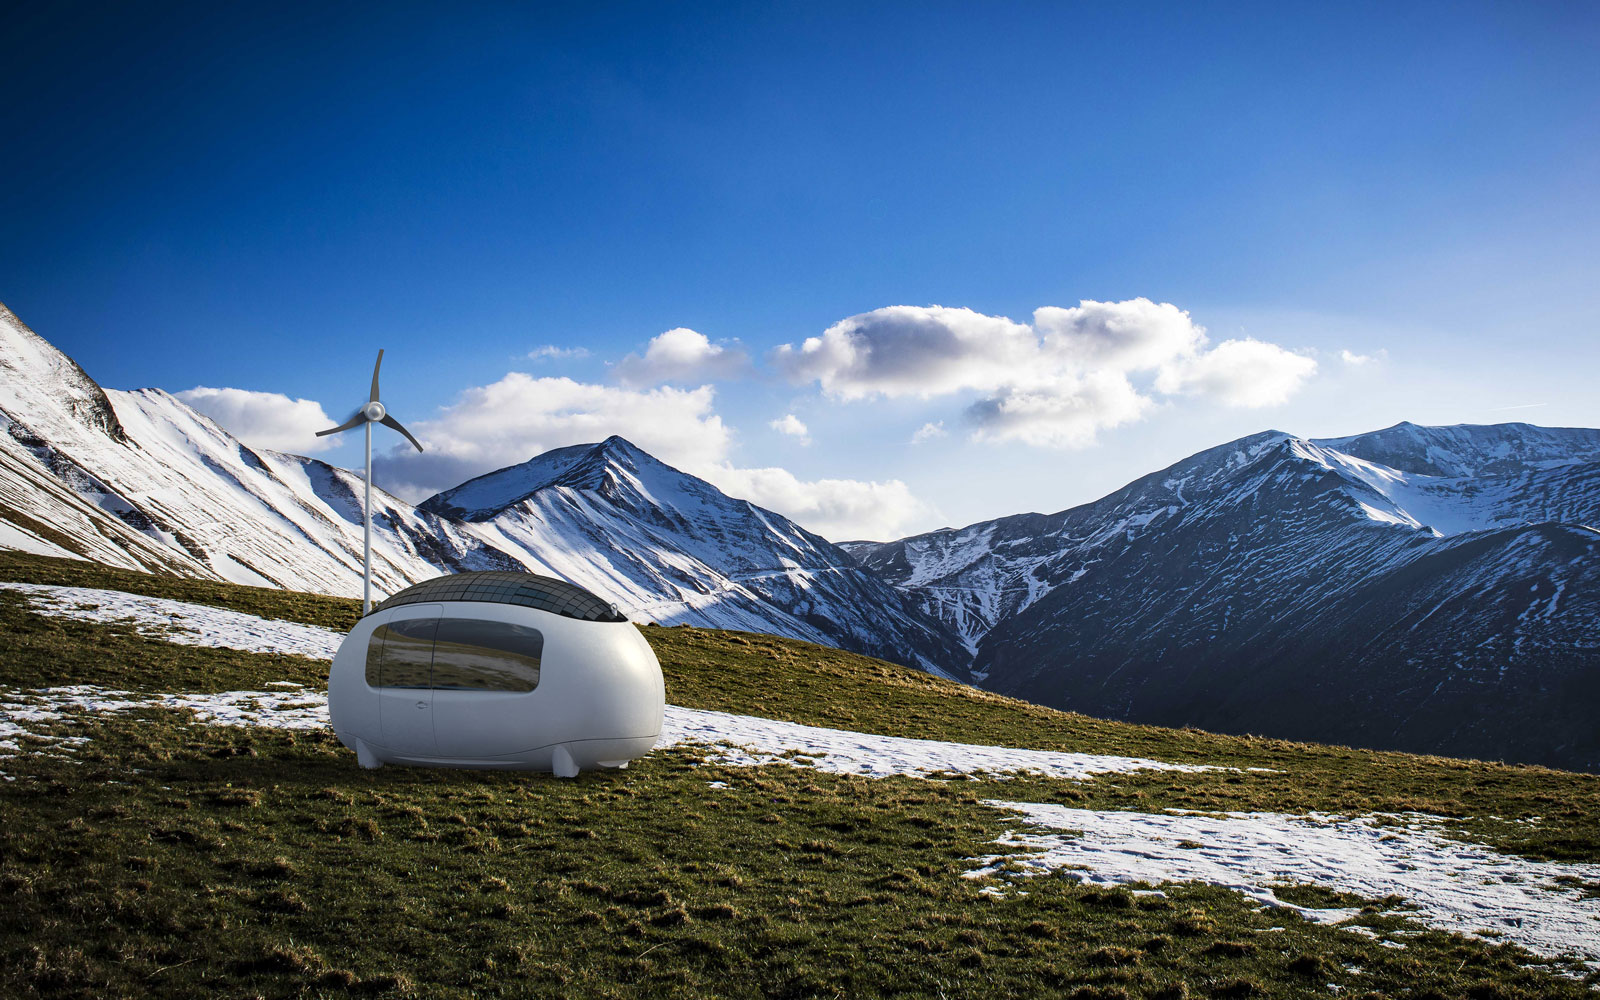 These Egg-shaped Pods Are the Most Stylish Way to Camp